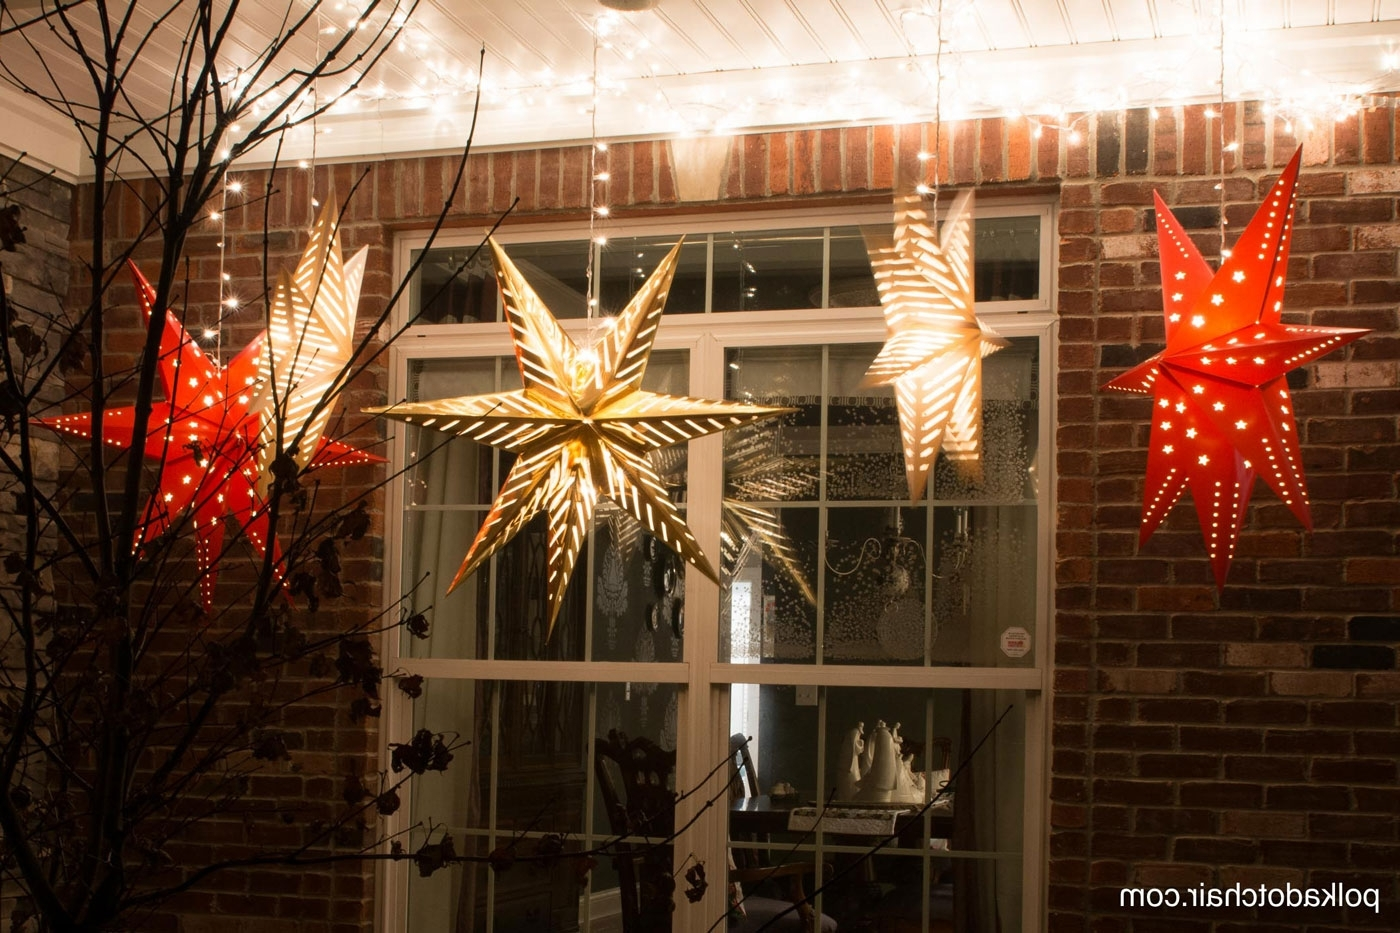 Hanging Star Lanterns; A Christmas Front Porch Decorating Idea – The Within Preferred Outdoor Lanterns For Christmas (View 7 of 20)